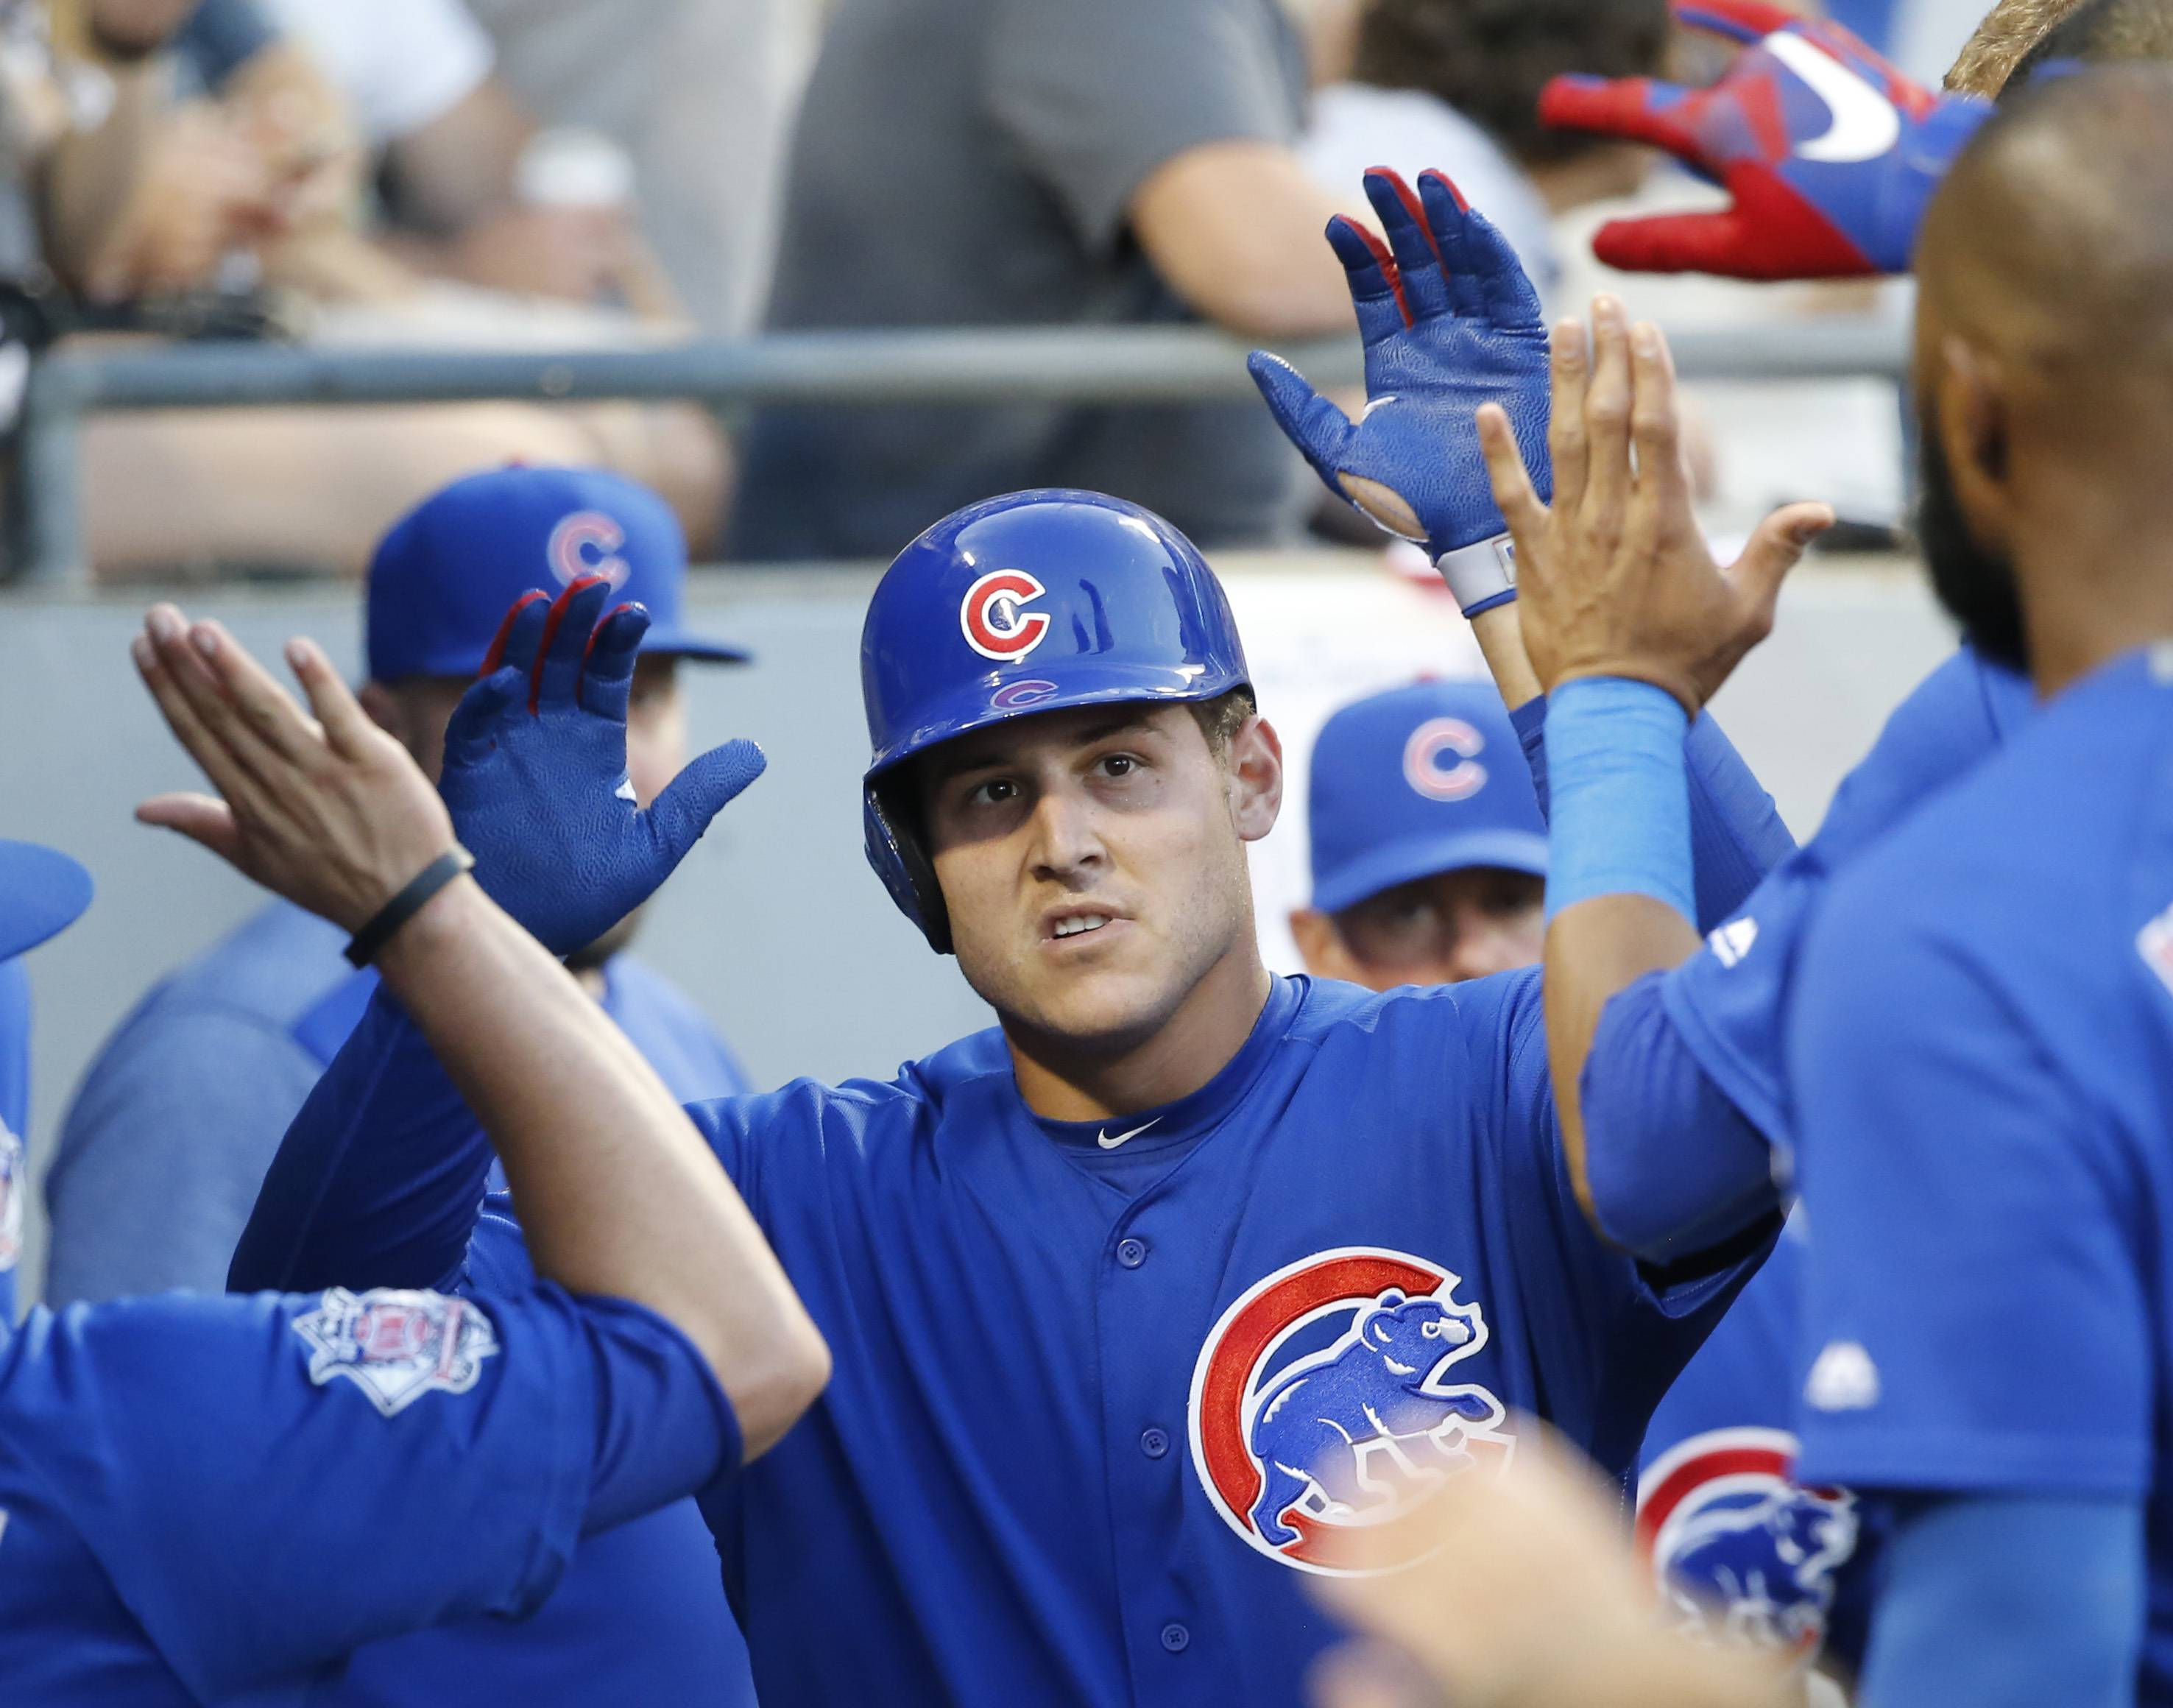 Chicago Cubs' Anthony Rizzo celebrates in the dugout after his home run off Chicago White Sox starting pitcher Mike Pelfrey during the fourth inning of a baseball game Thursday, July 27, 2017, in Chicago.